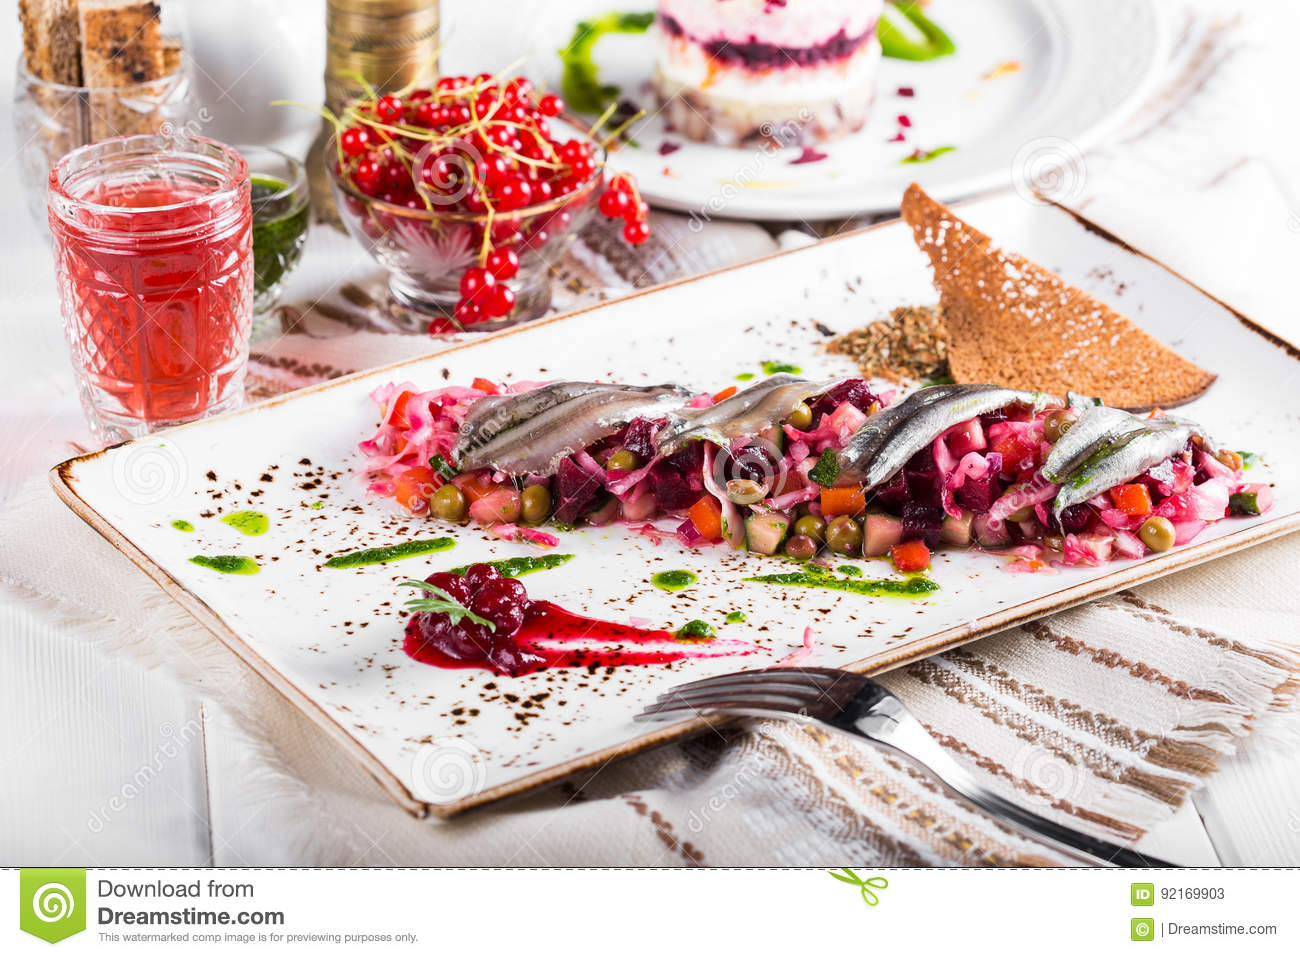 Traditional Russian and Ukrainian vegetable salad Vinaigrette on a served table